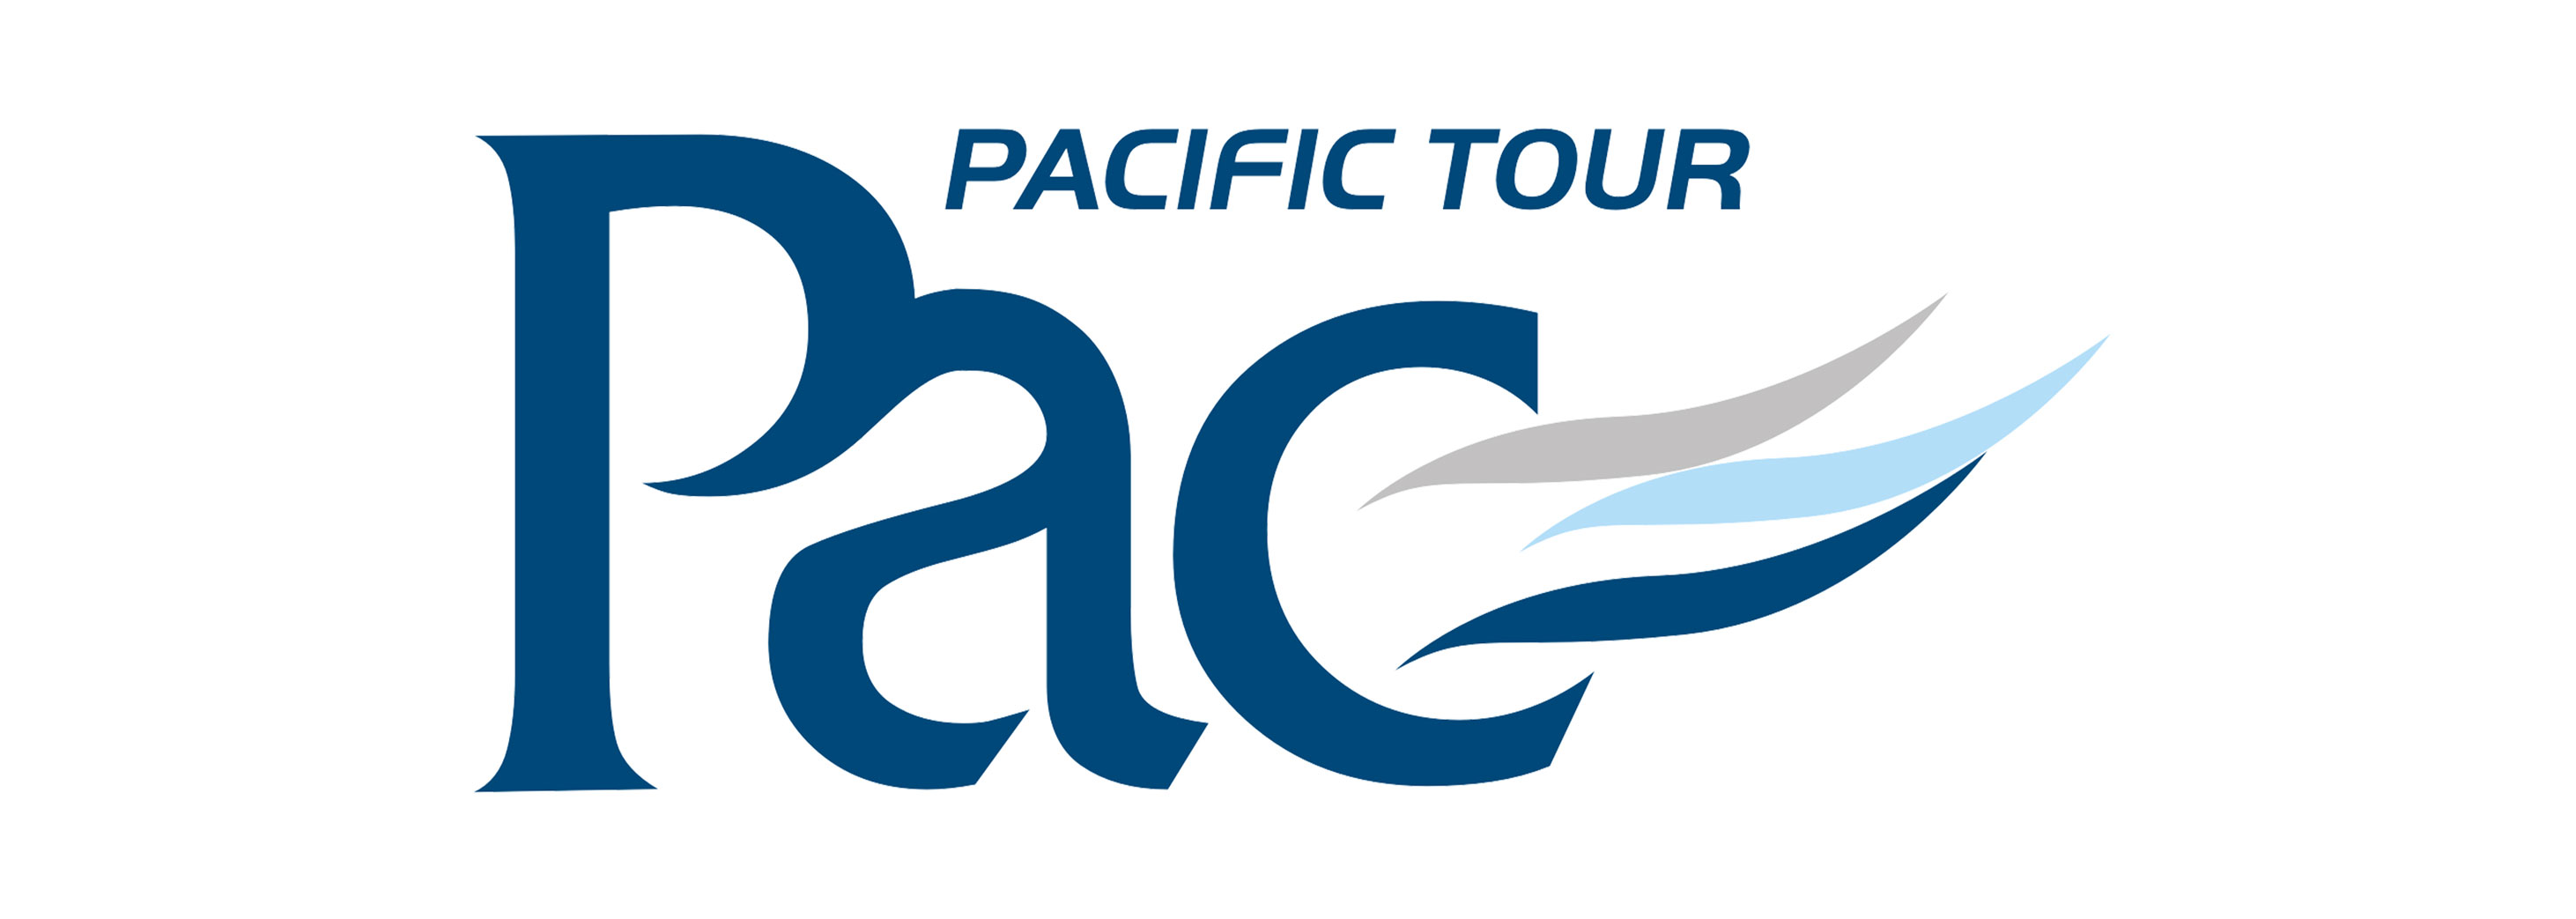 Pacific Travel Service